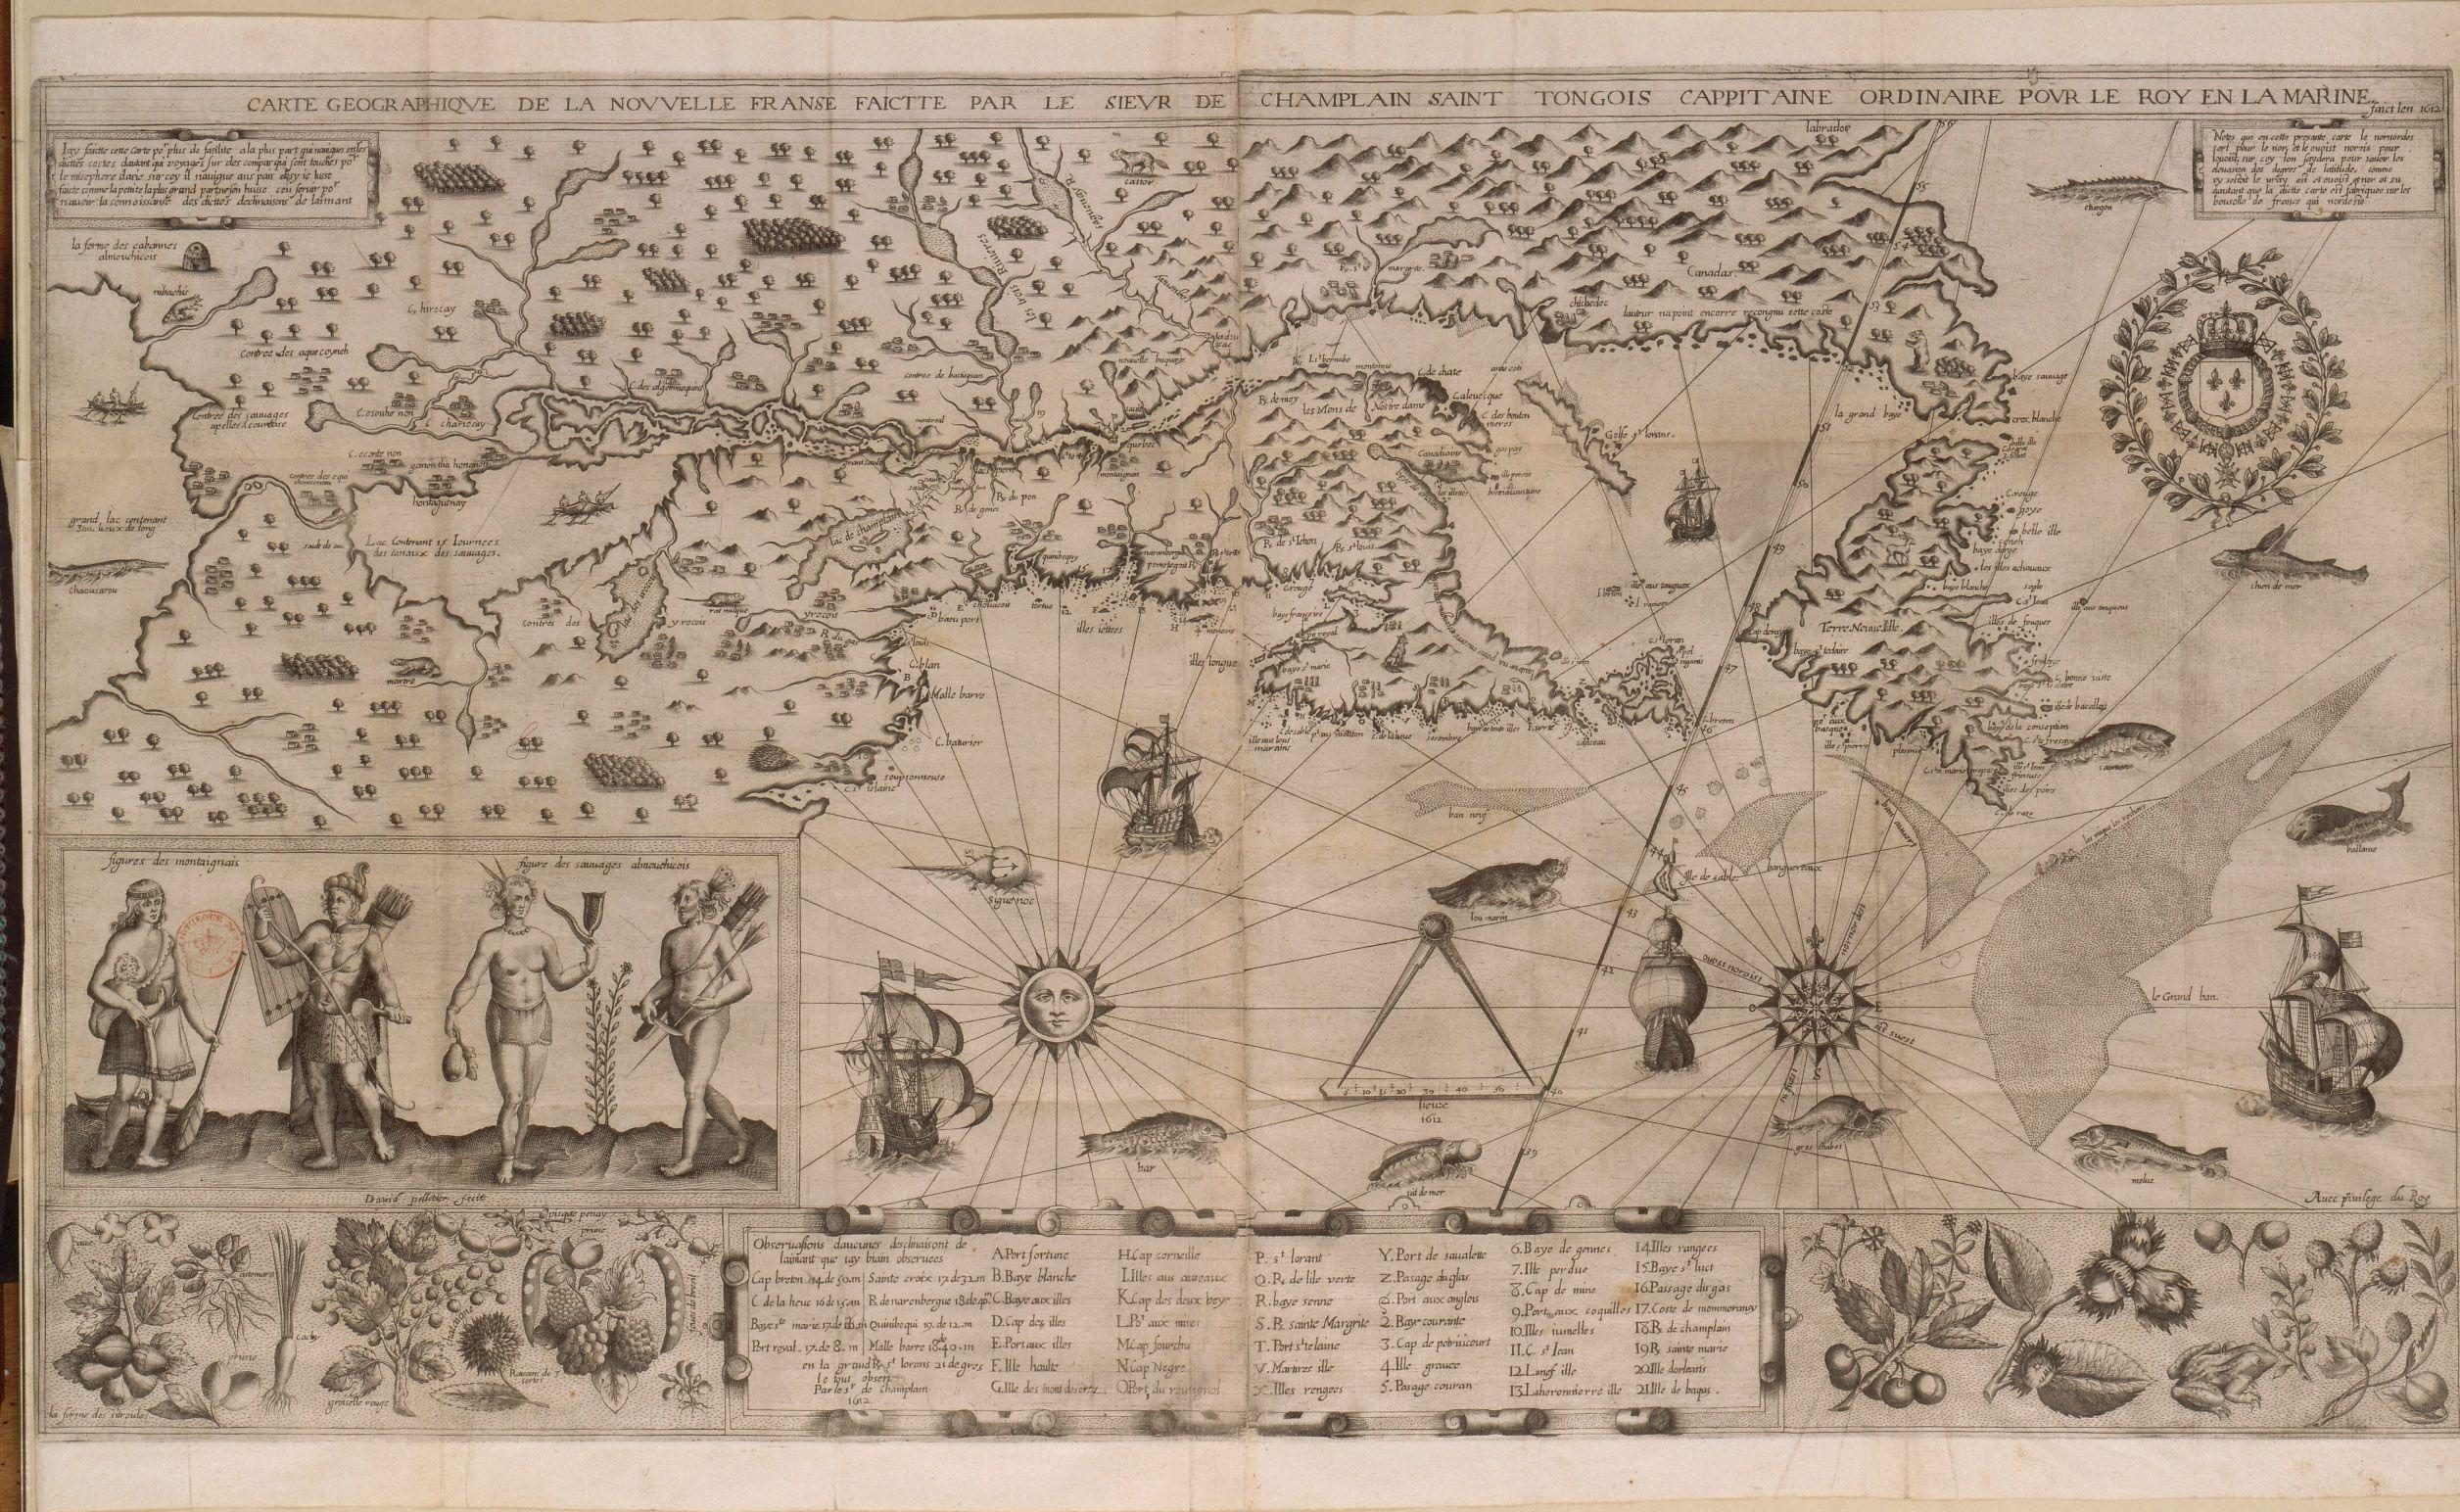 Champlain's 1612 map of New France (from Wikipedia)